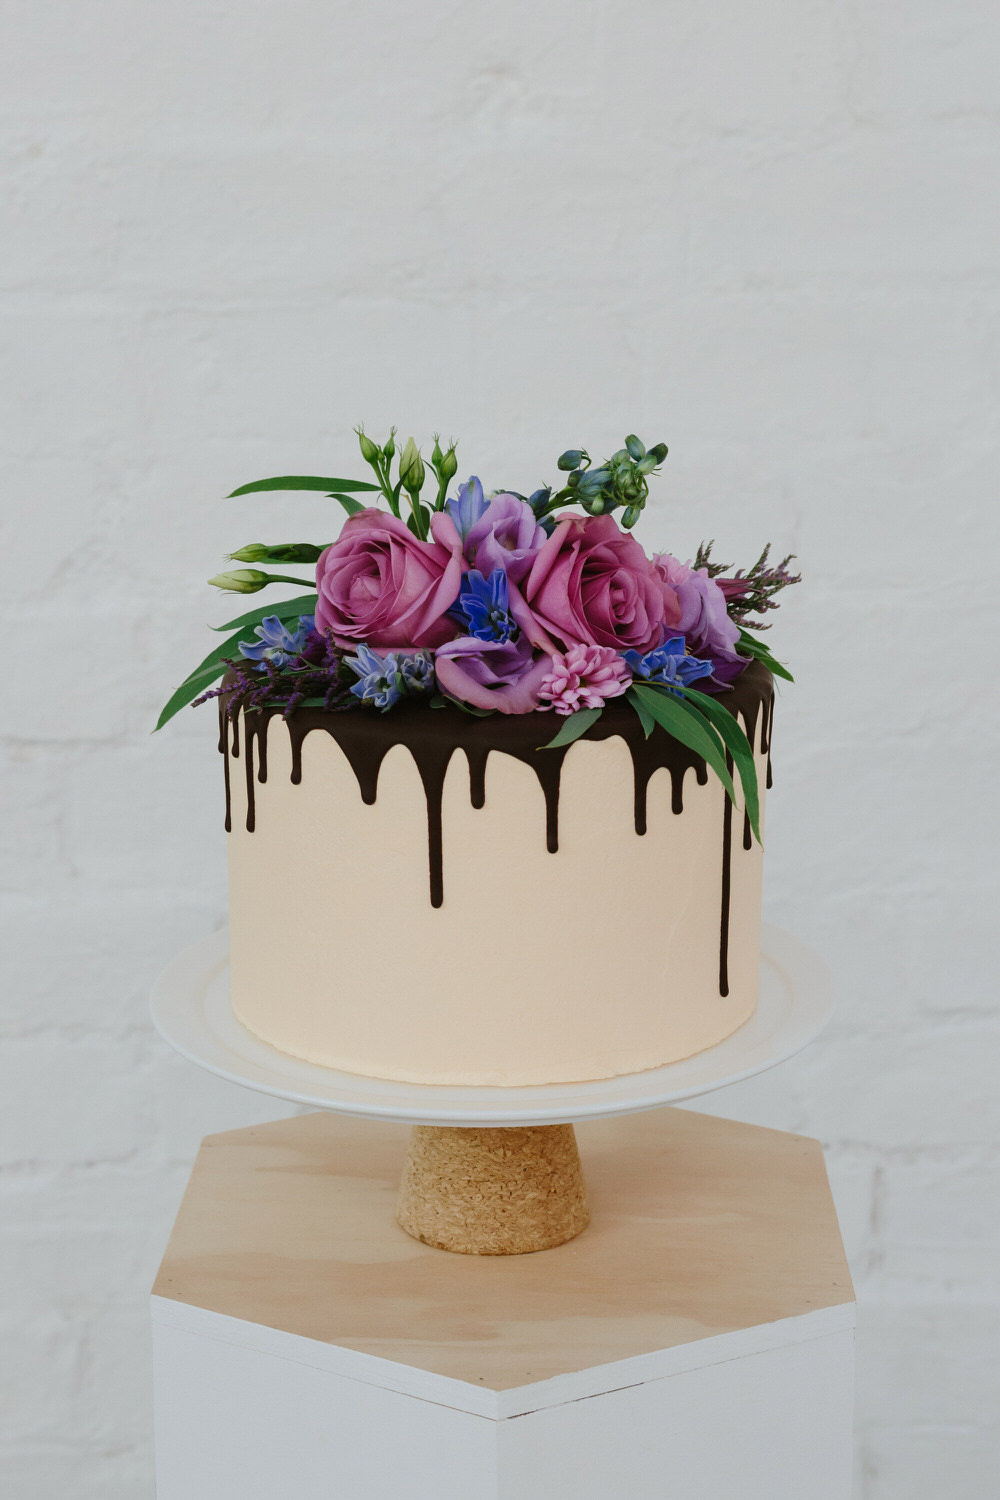 glasgow-food-photography-cake-big-bear-bakery-flower-crown-2